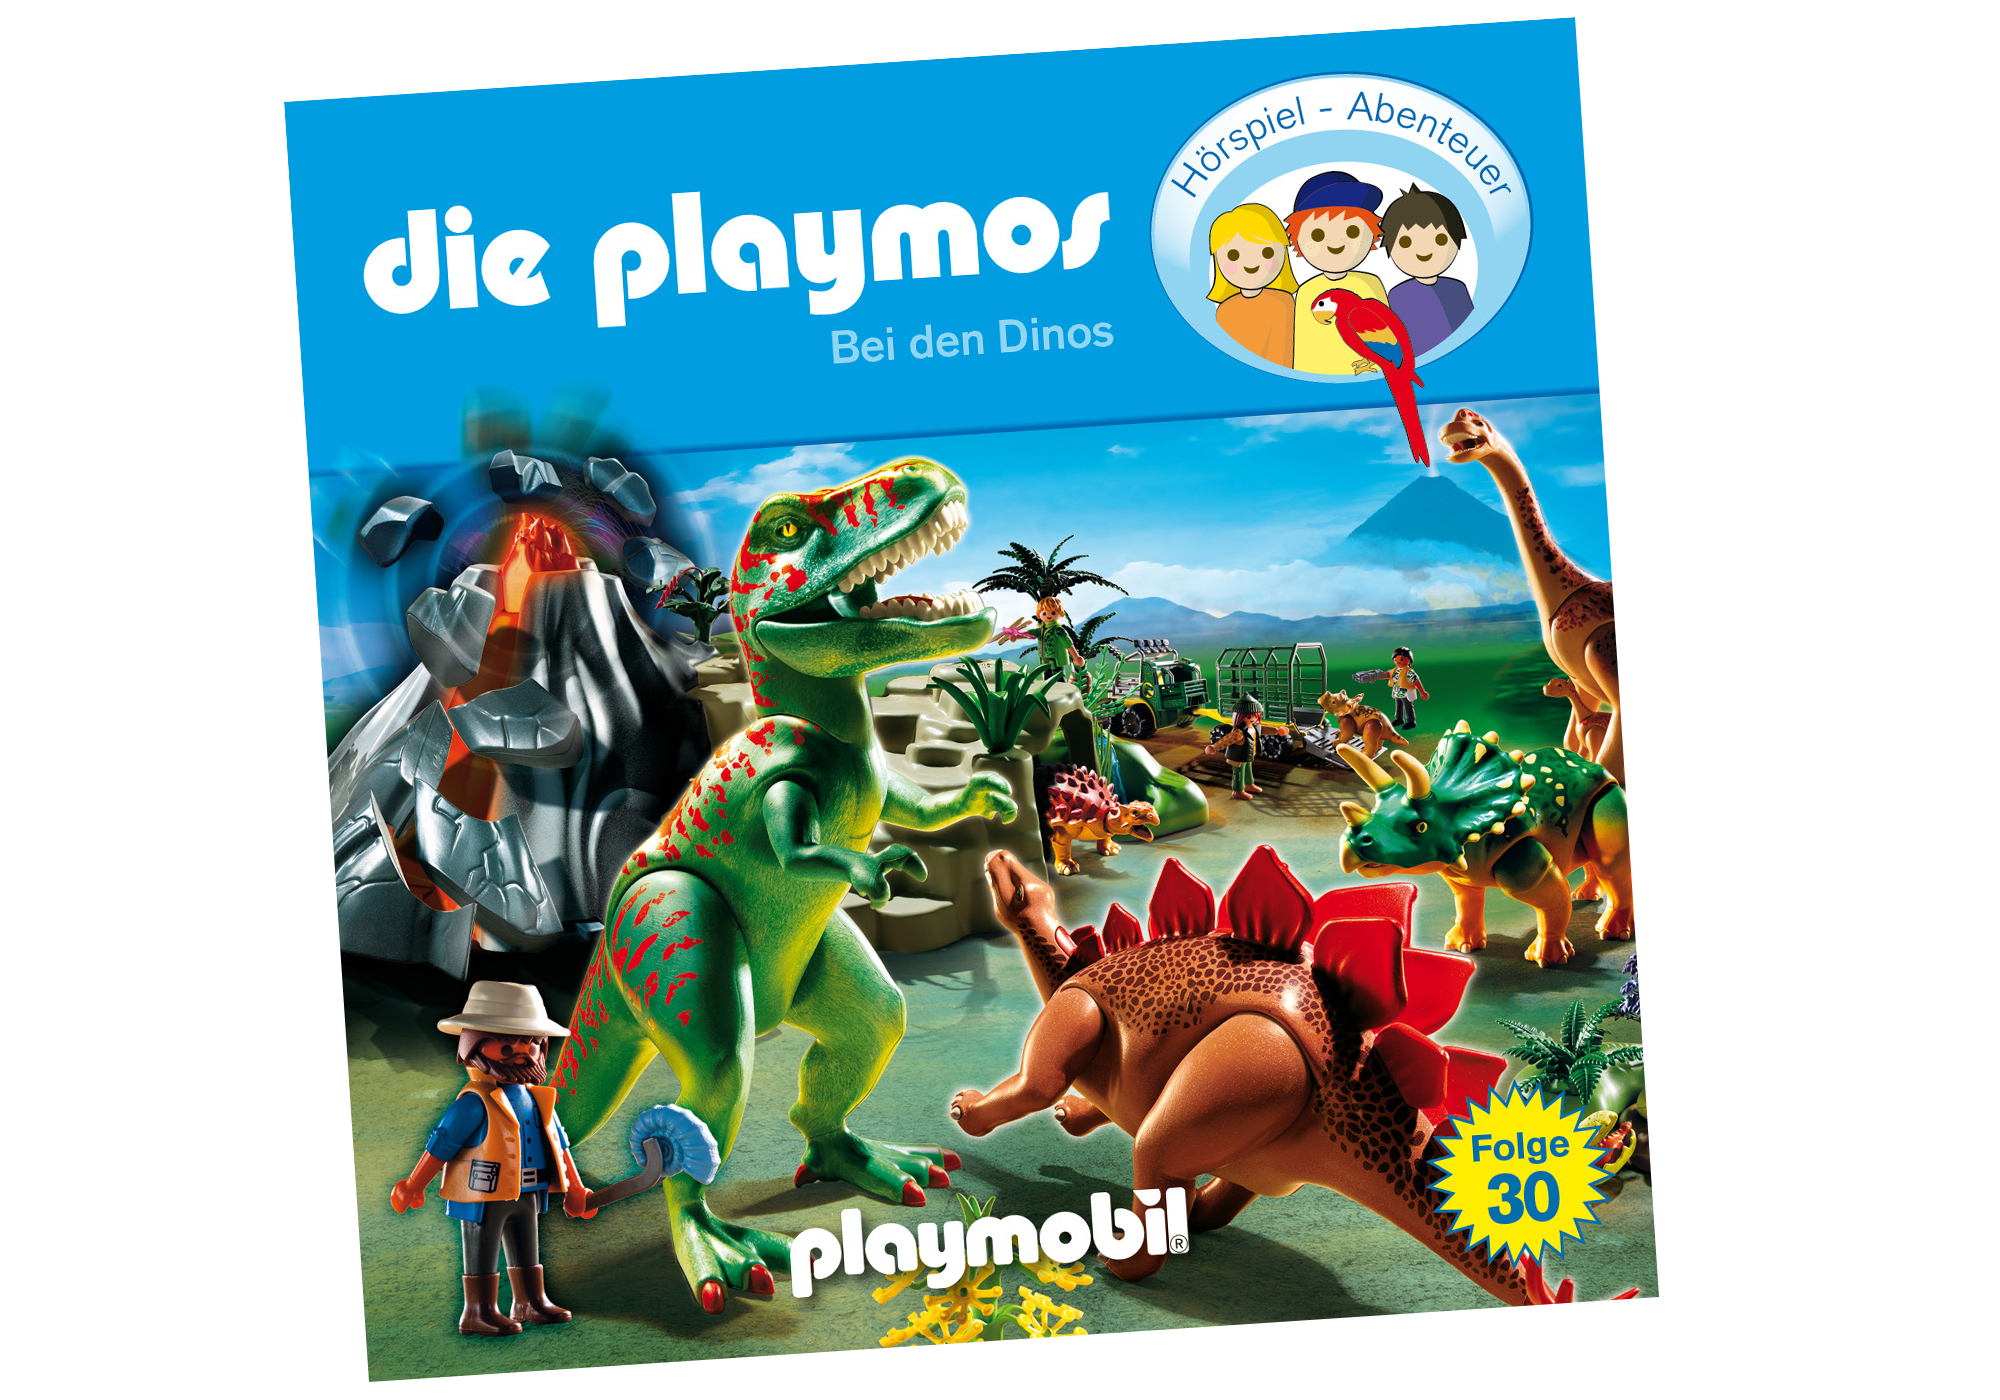 http://media.playmobil.com/i/playmobil/80346_product_detail/Bei den Dinos (30) - CD